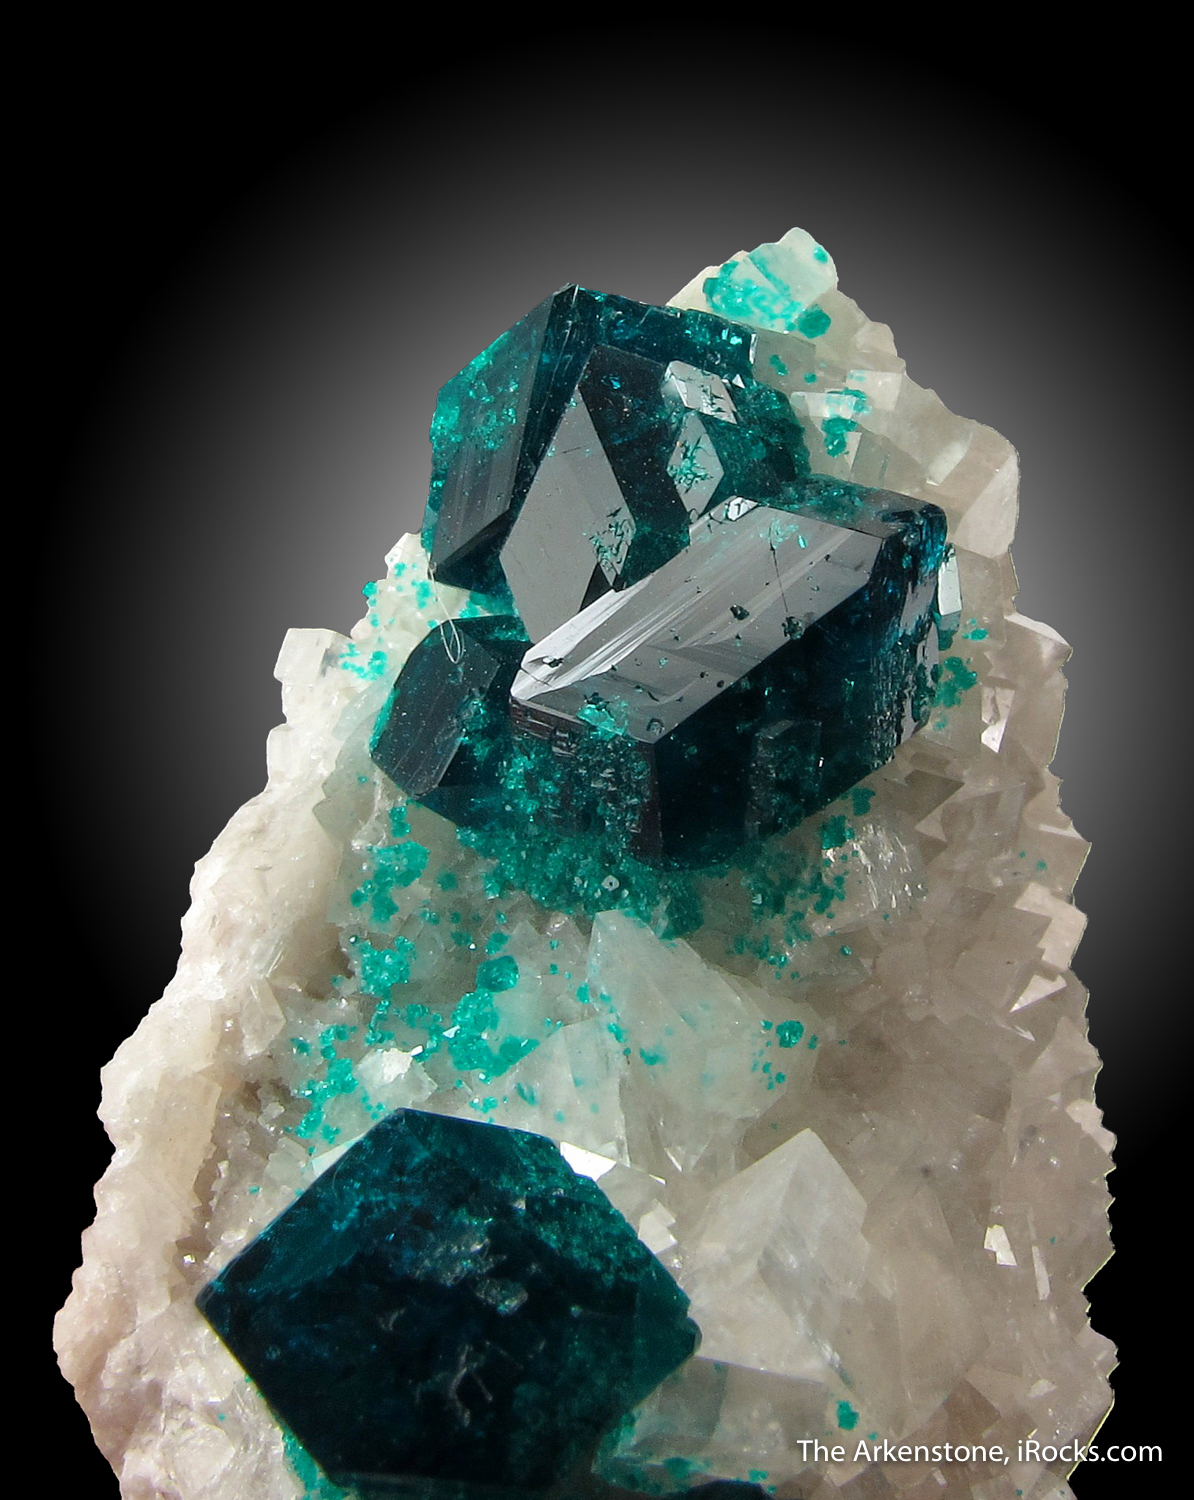 When comes Dioptase locality greater prolific Tsumeb quality quantity